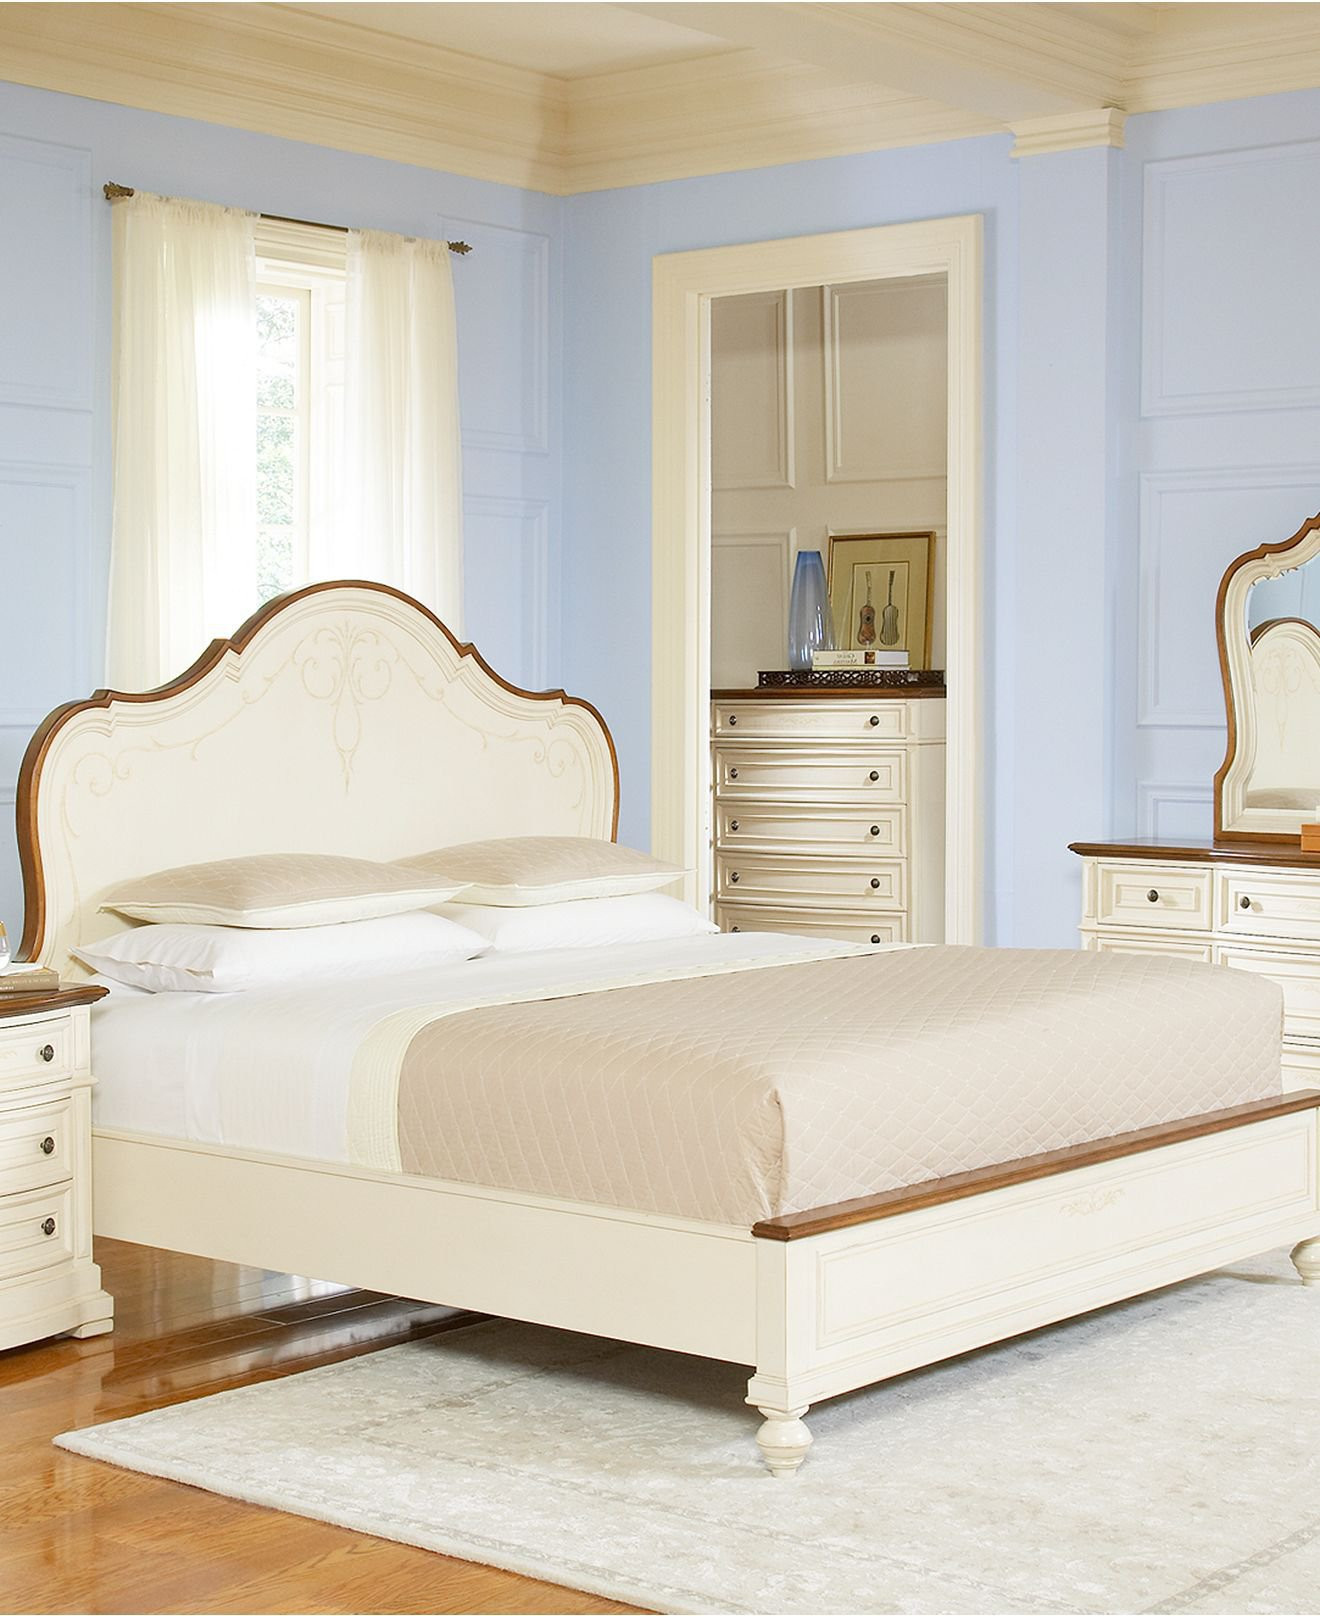 Best ideas about Macys Bedroom Sets . Save or Pin Macys Bedroom Furniture Low Wedge Sandals Now.